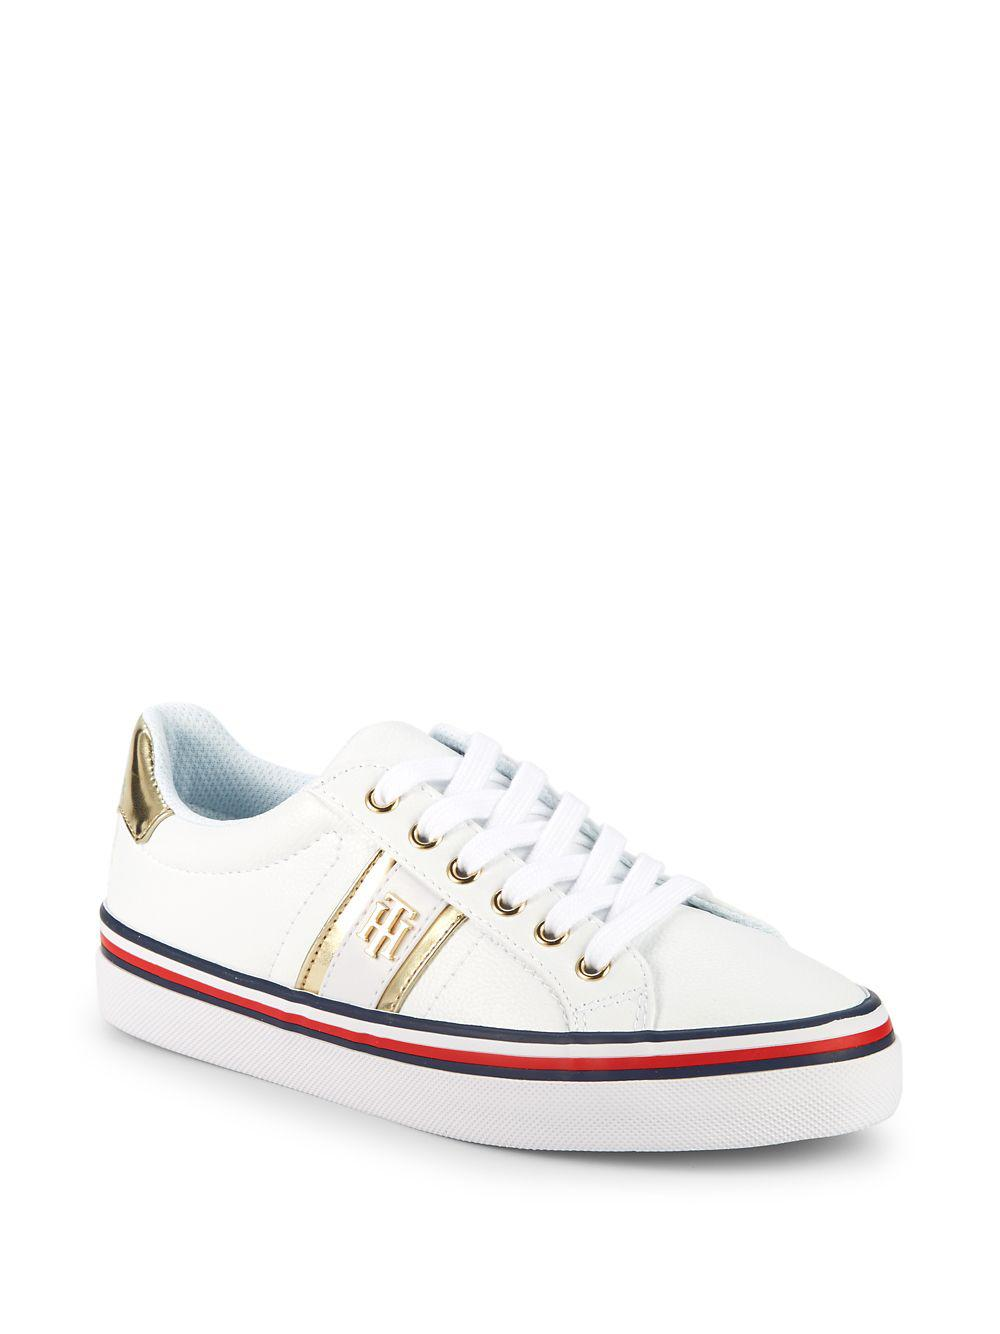 b6a61c642641c5 Lyst - Tommy Hilfiger Fentii Low-top Sneakers in White for Men